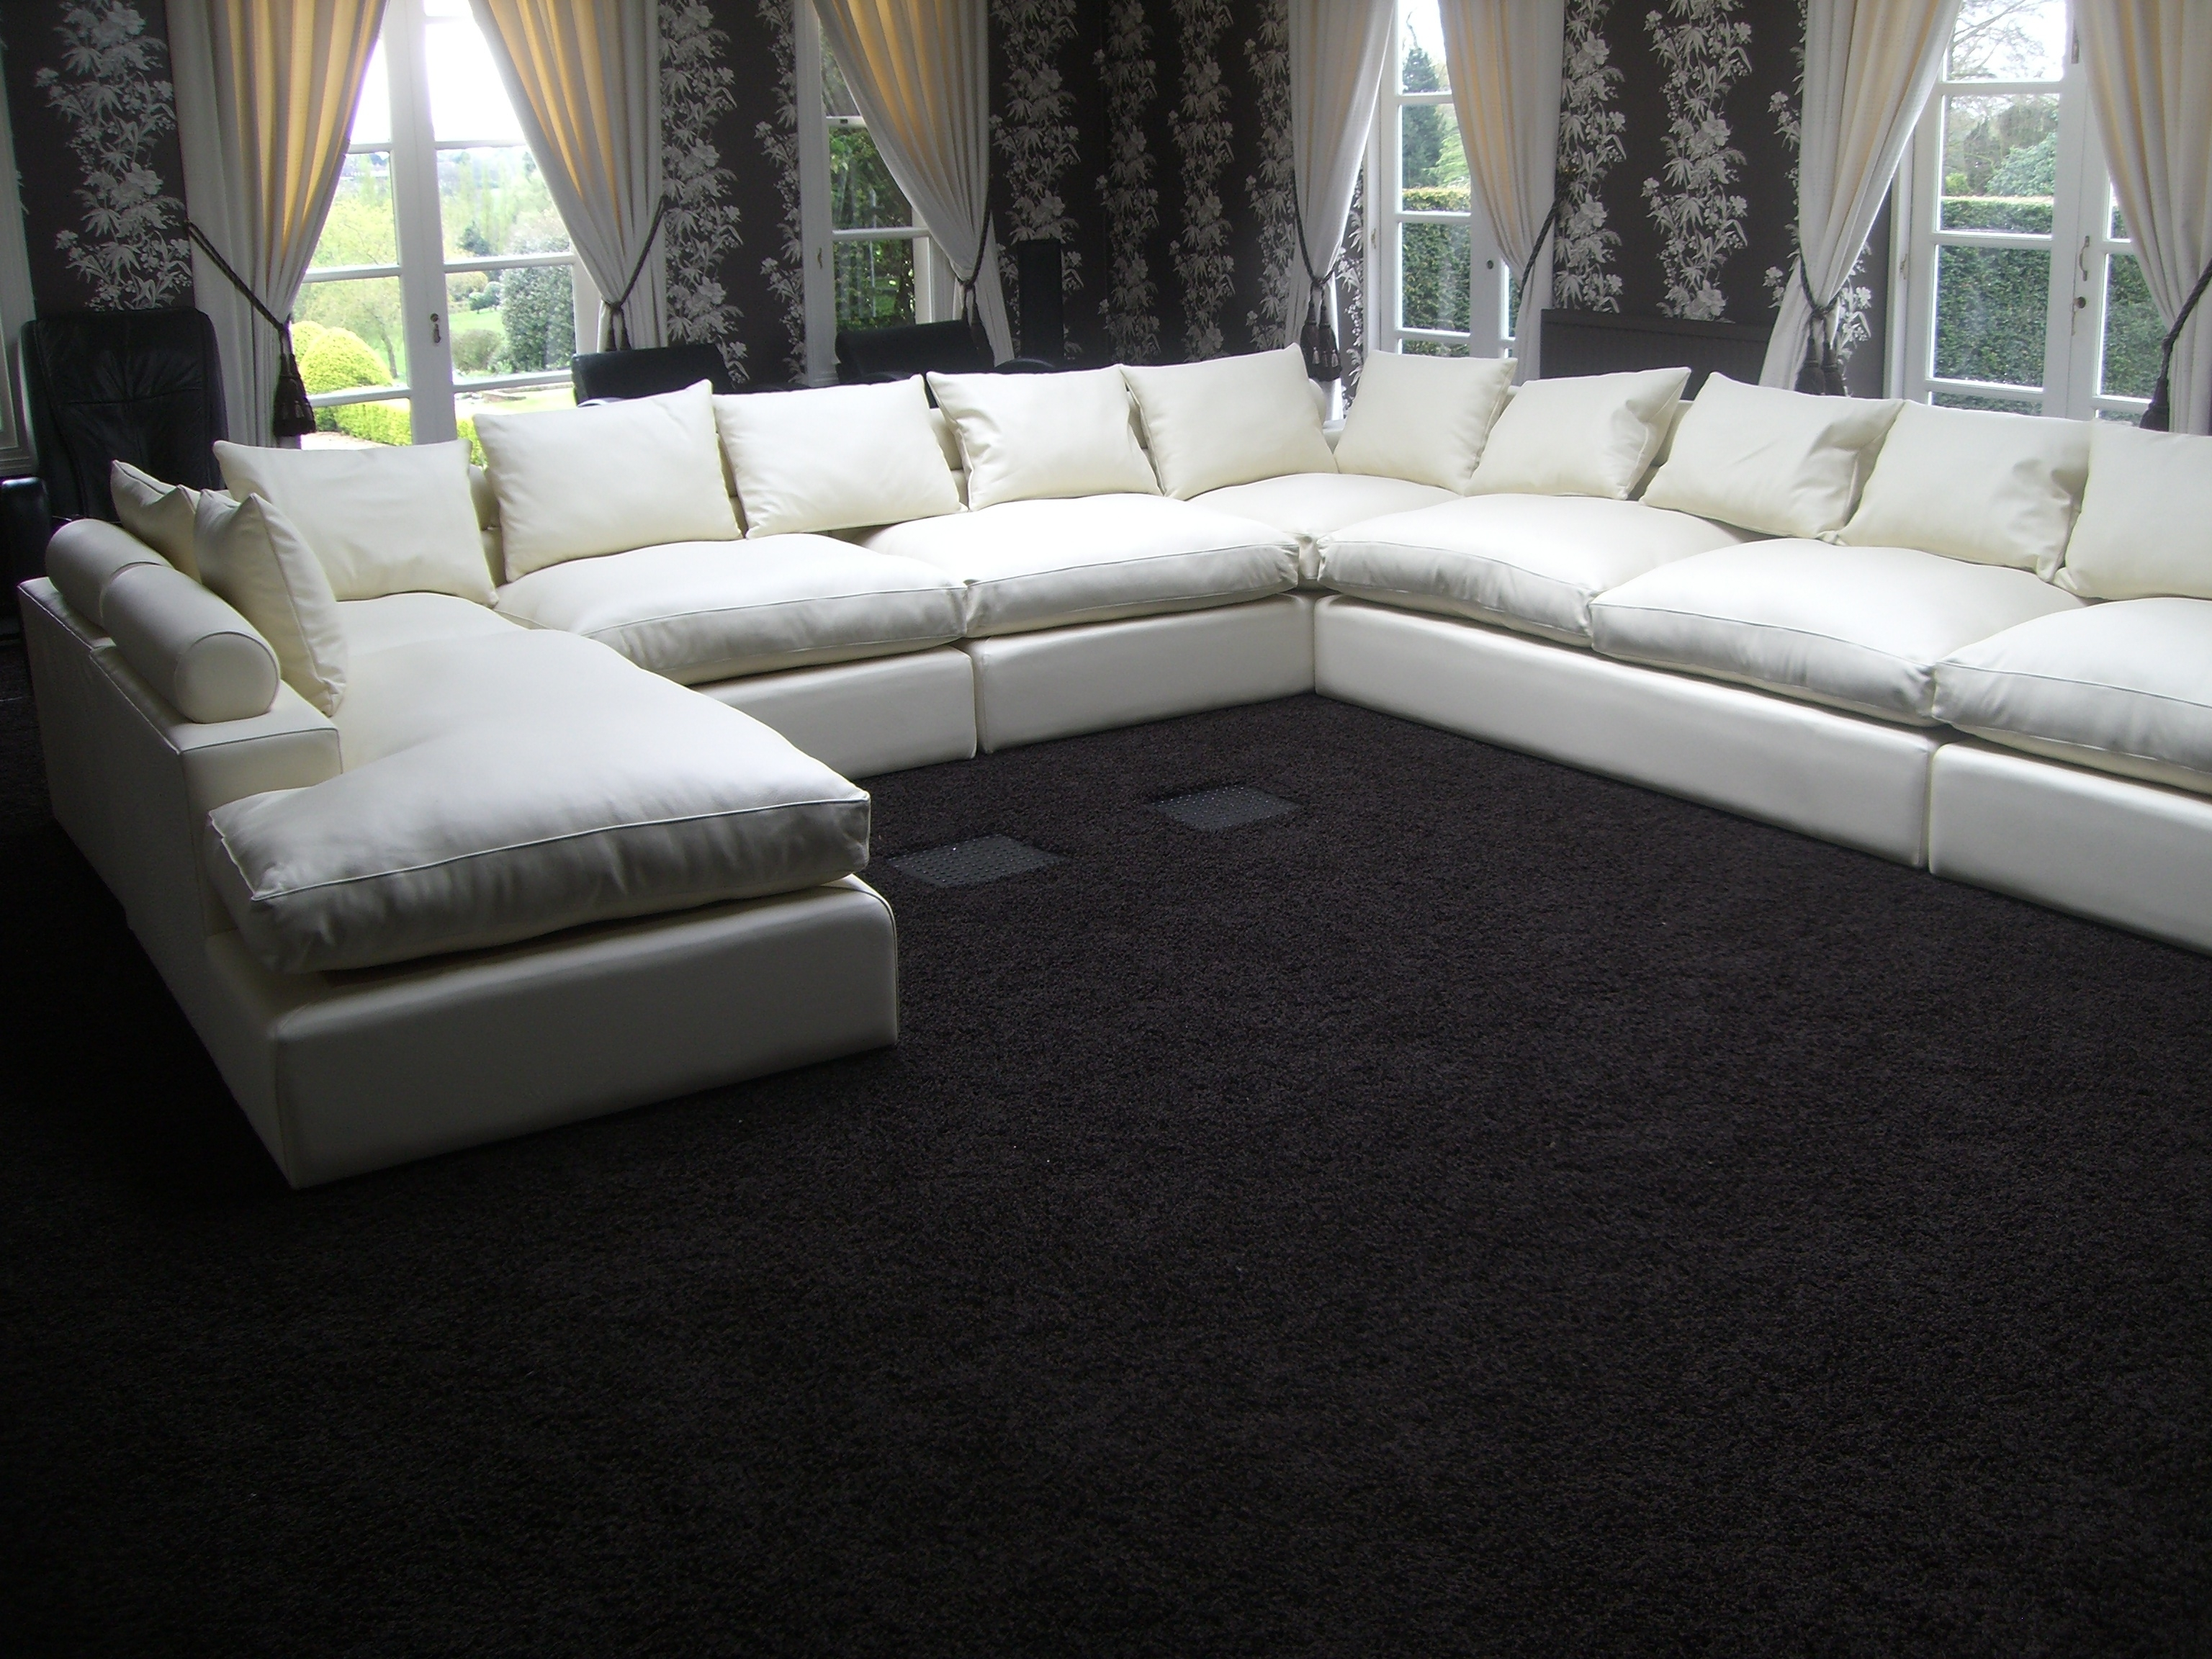 Current Large U Shaped Sofa – Fjellkjeden With Regard To Big U Shaped Sectionals (View 19 of 20)